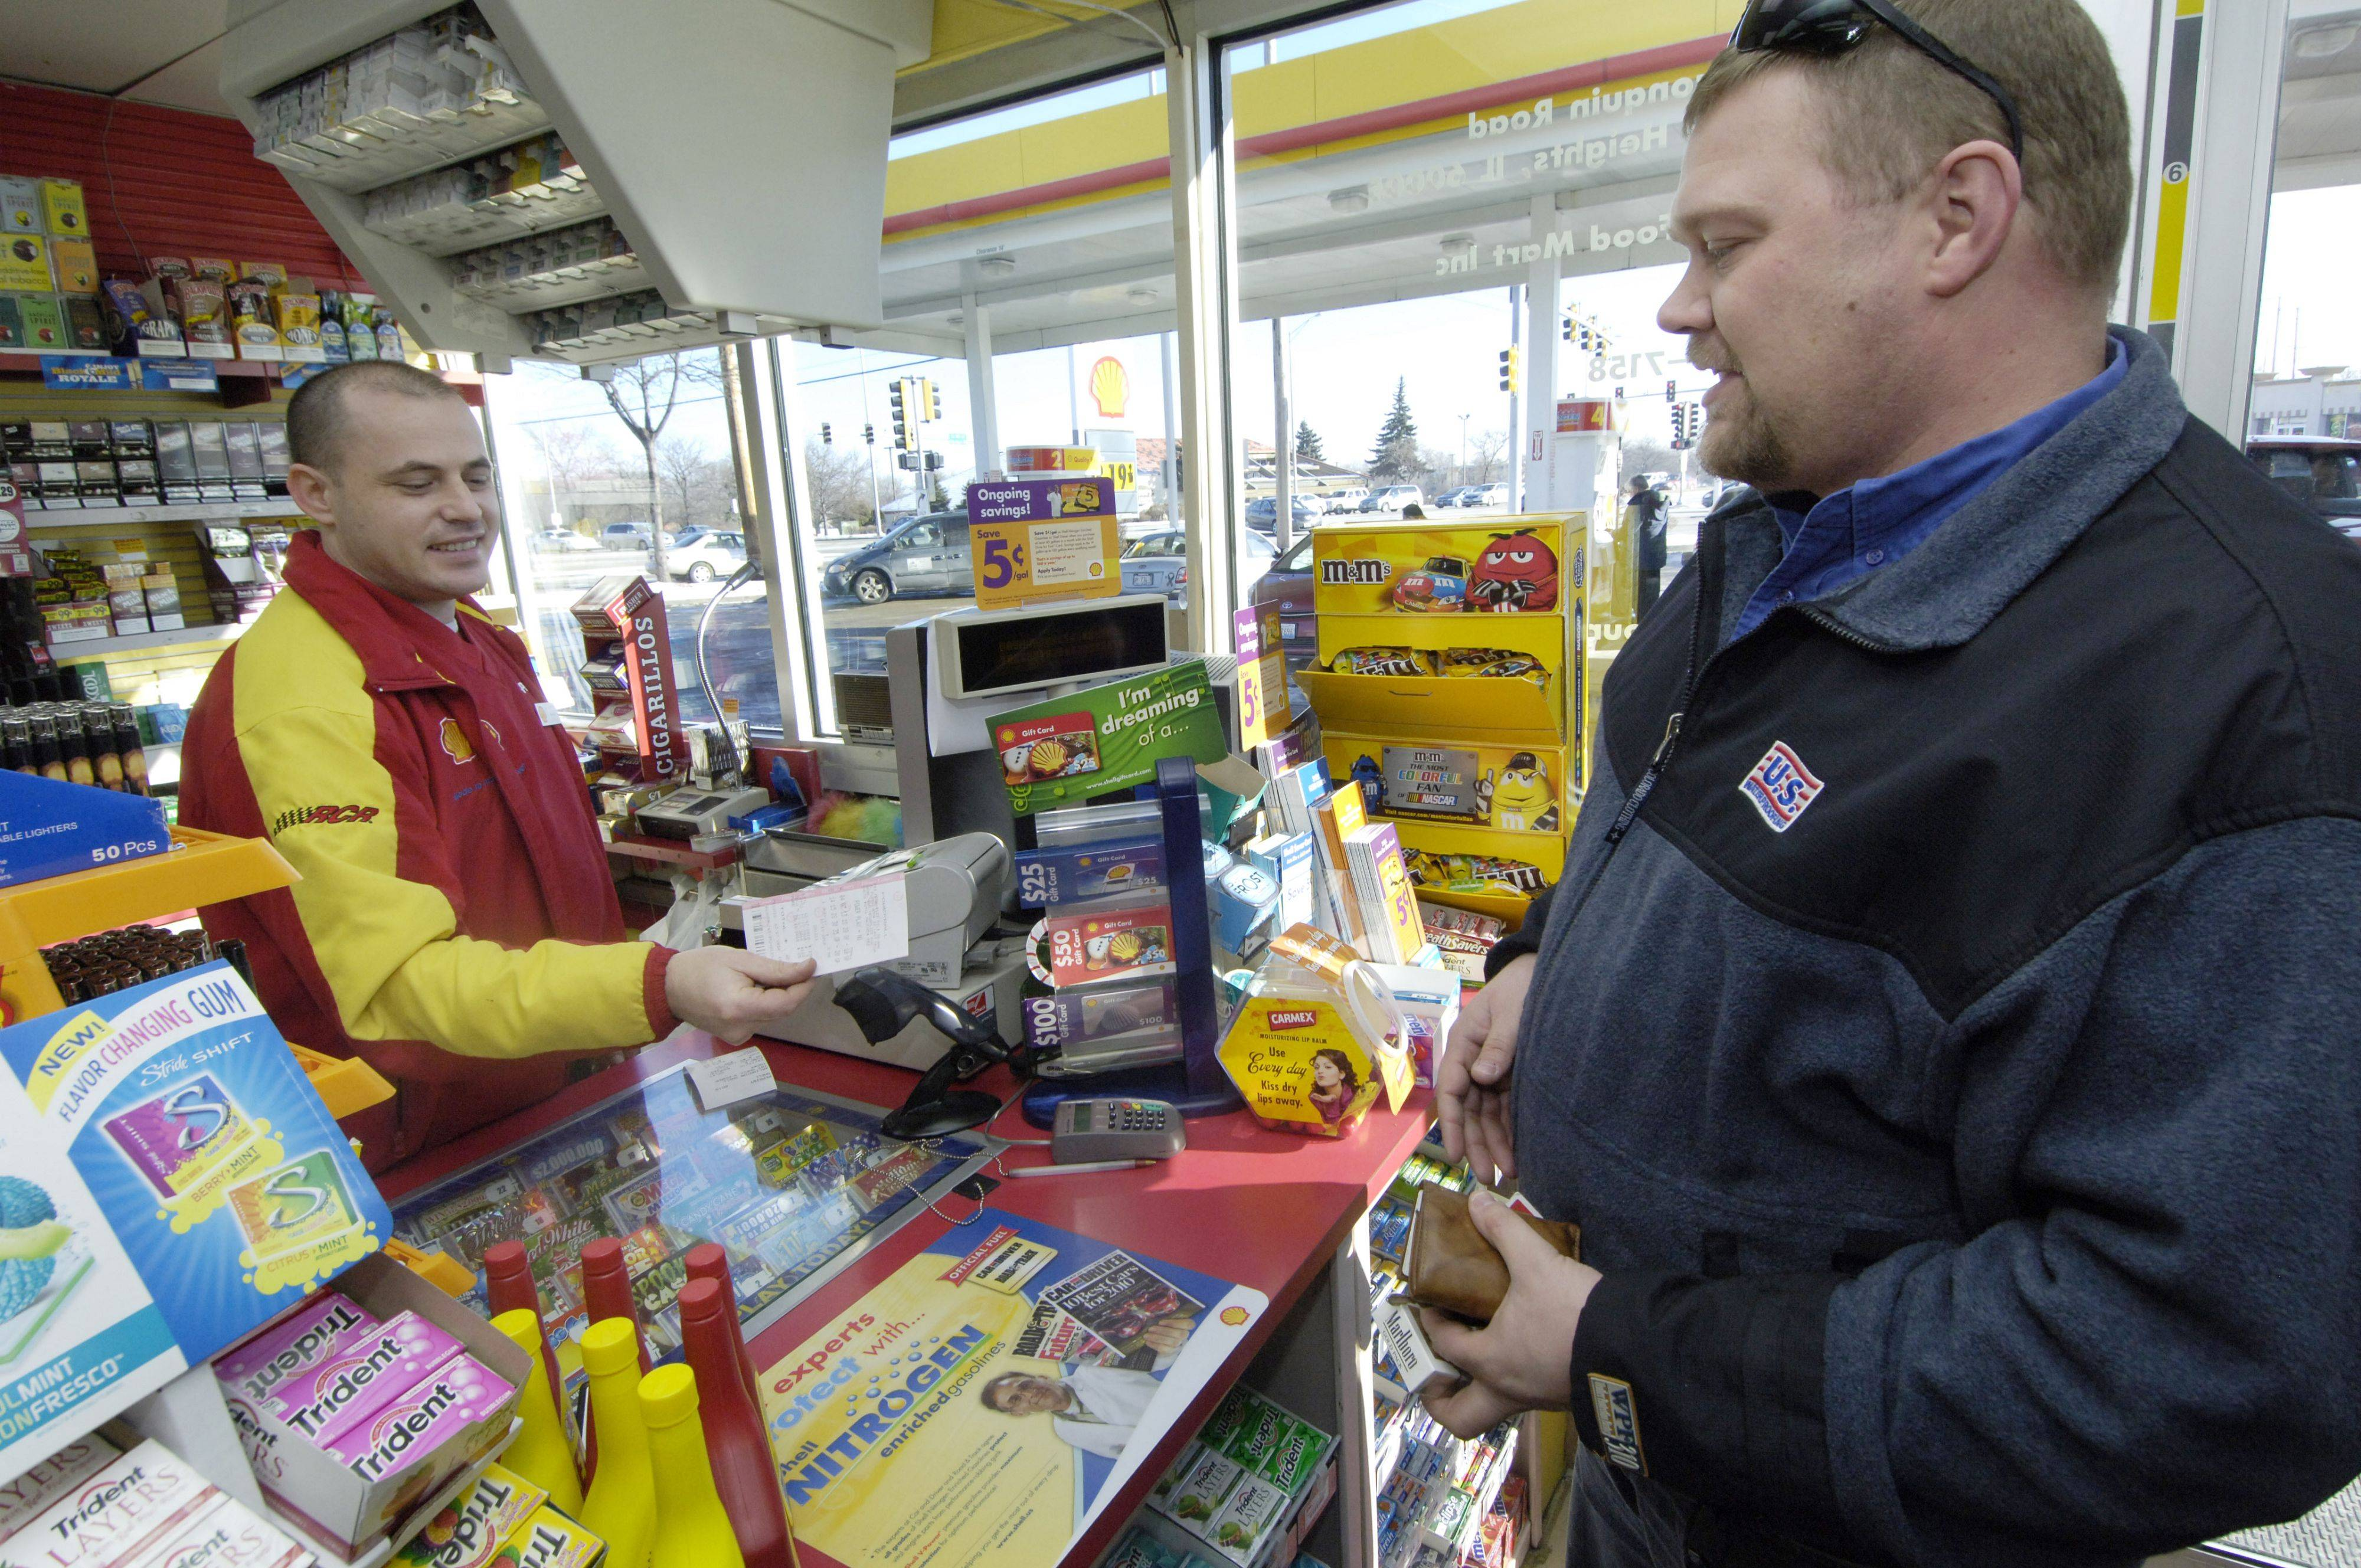 Kenneth Kirchner purchases a Powerball ticket from clerk Slavisa Miladinovic at the Arlington Heights Shell station at Arlington Heights and Algonquin roads Friday. Kirchner resides in New Lenox and works in Rolling Meadows.